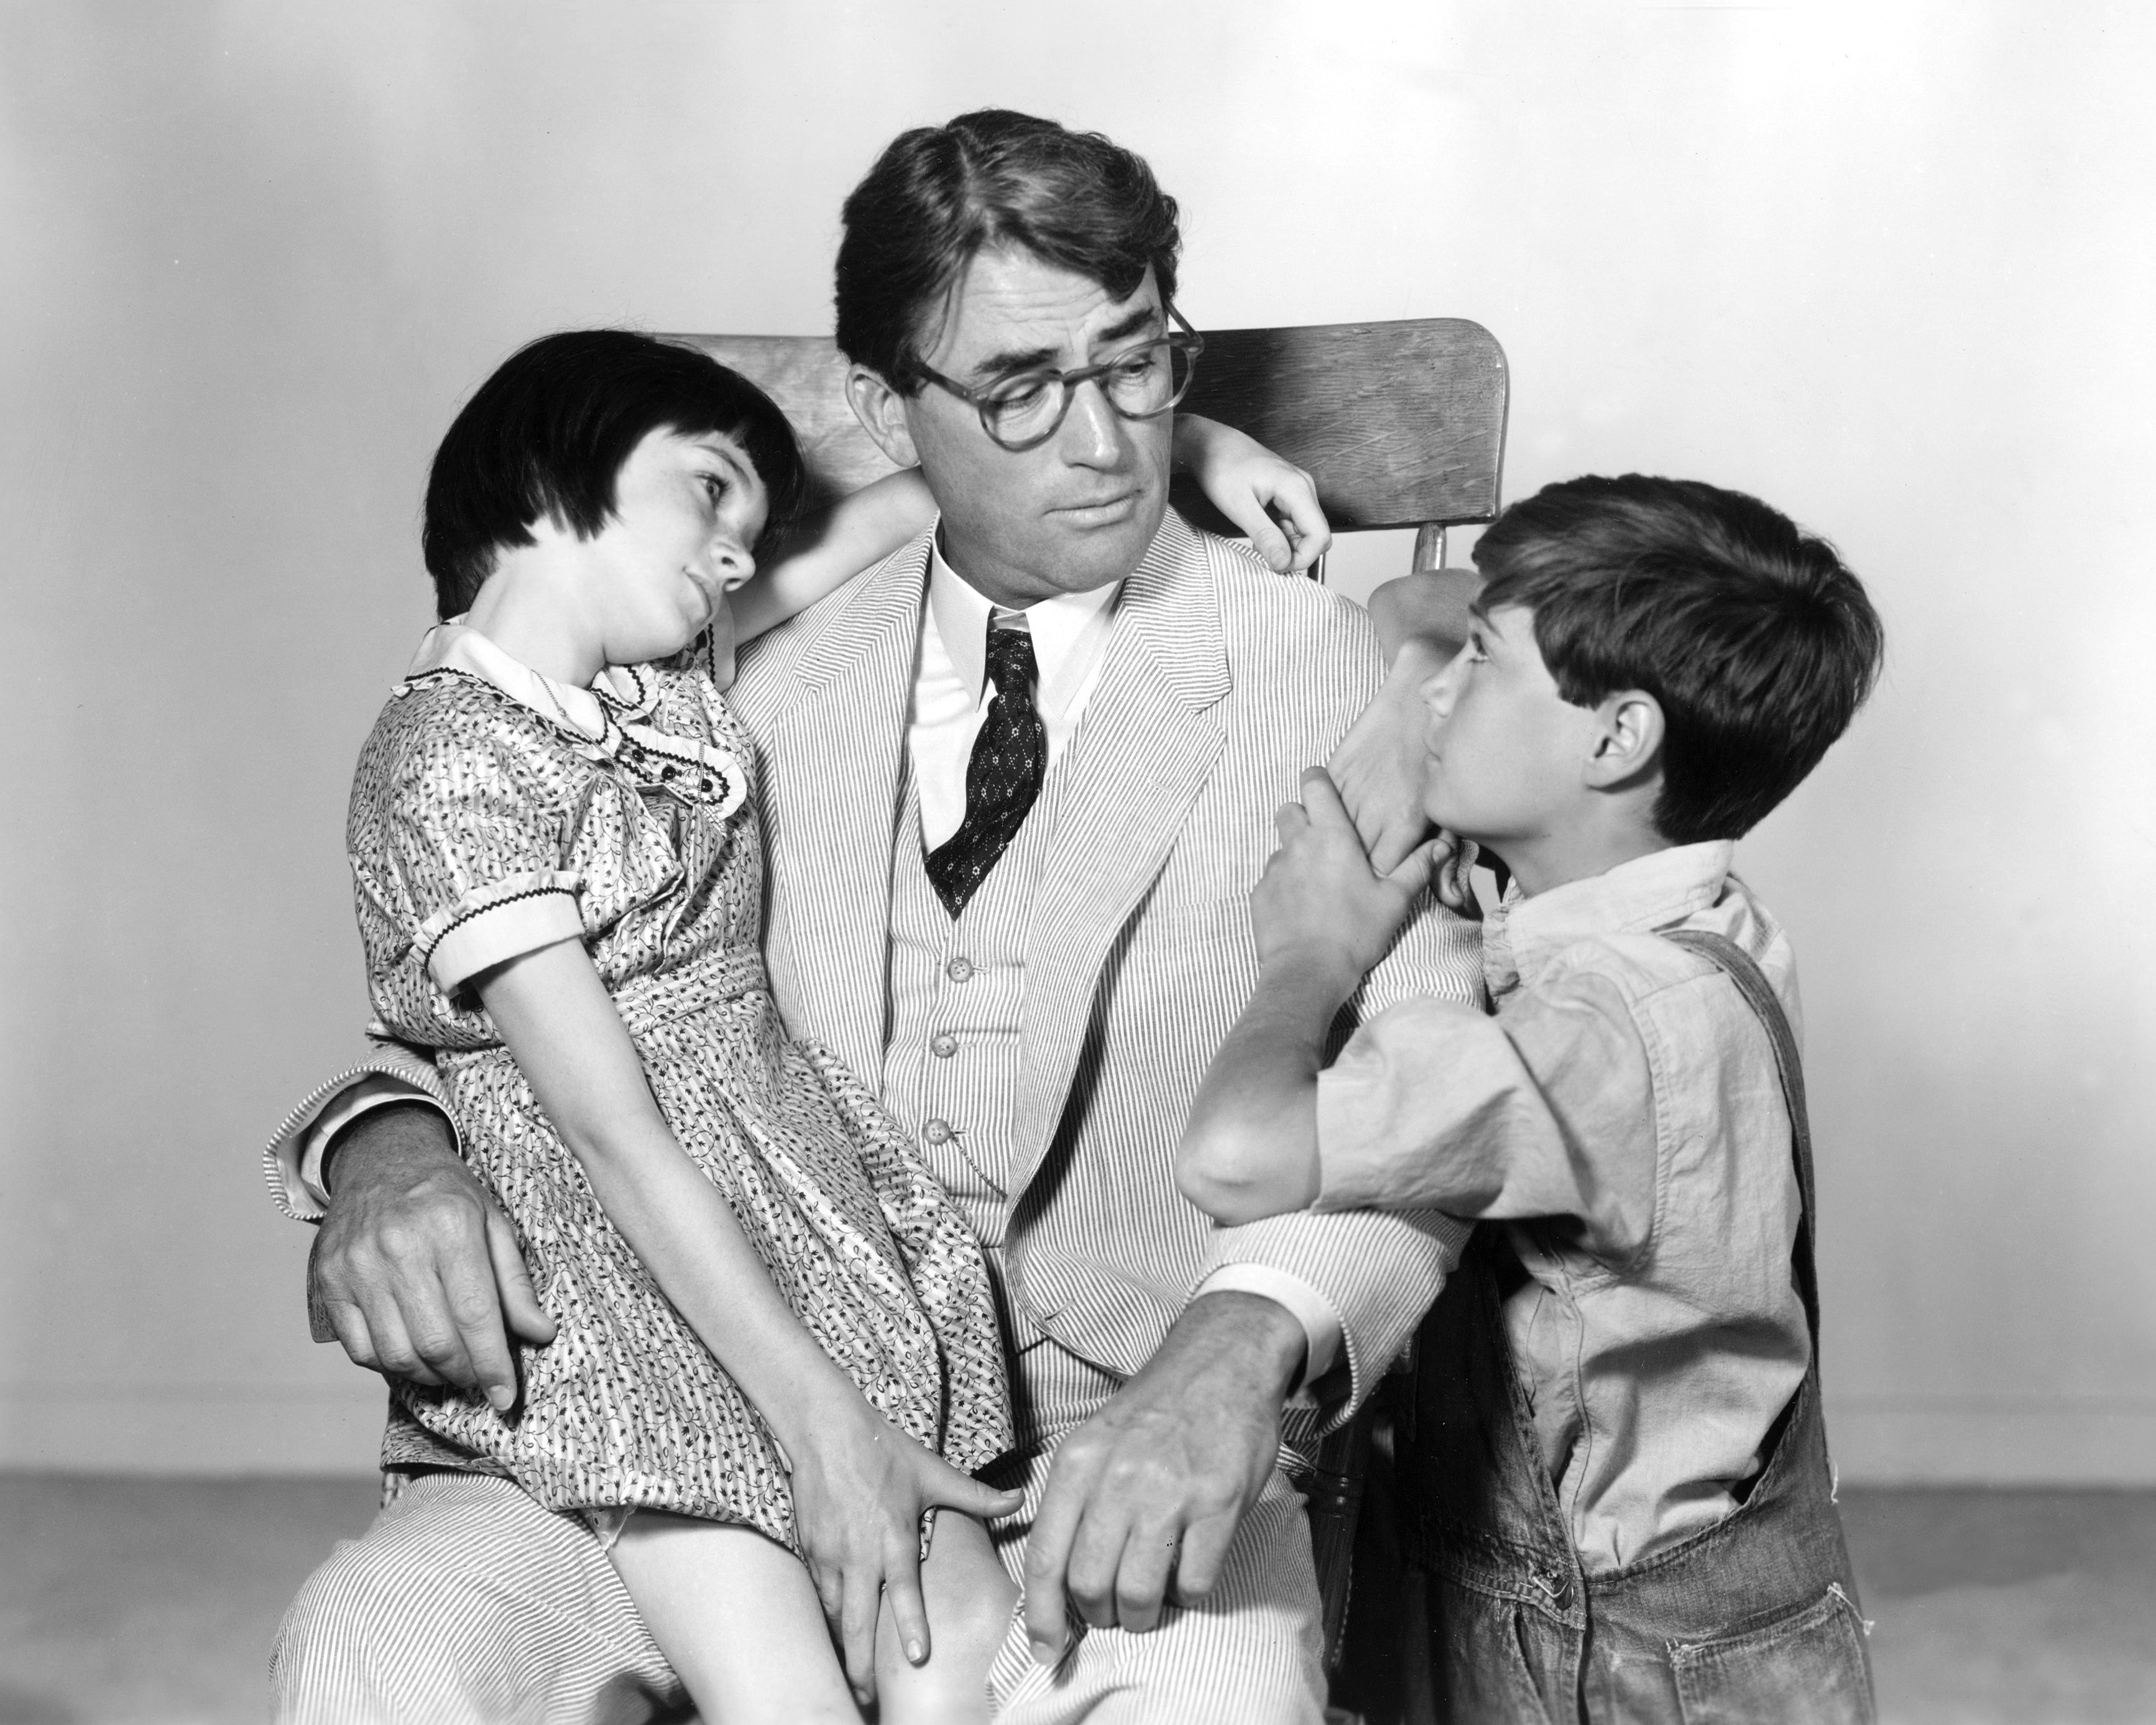 Gregory Peck as Atticus Finch, Mary Badham as Jean Louise 'Scout' Finch and Phillip Alford as Jeremy 'Jem' Finch in To Kill a Mockingbird